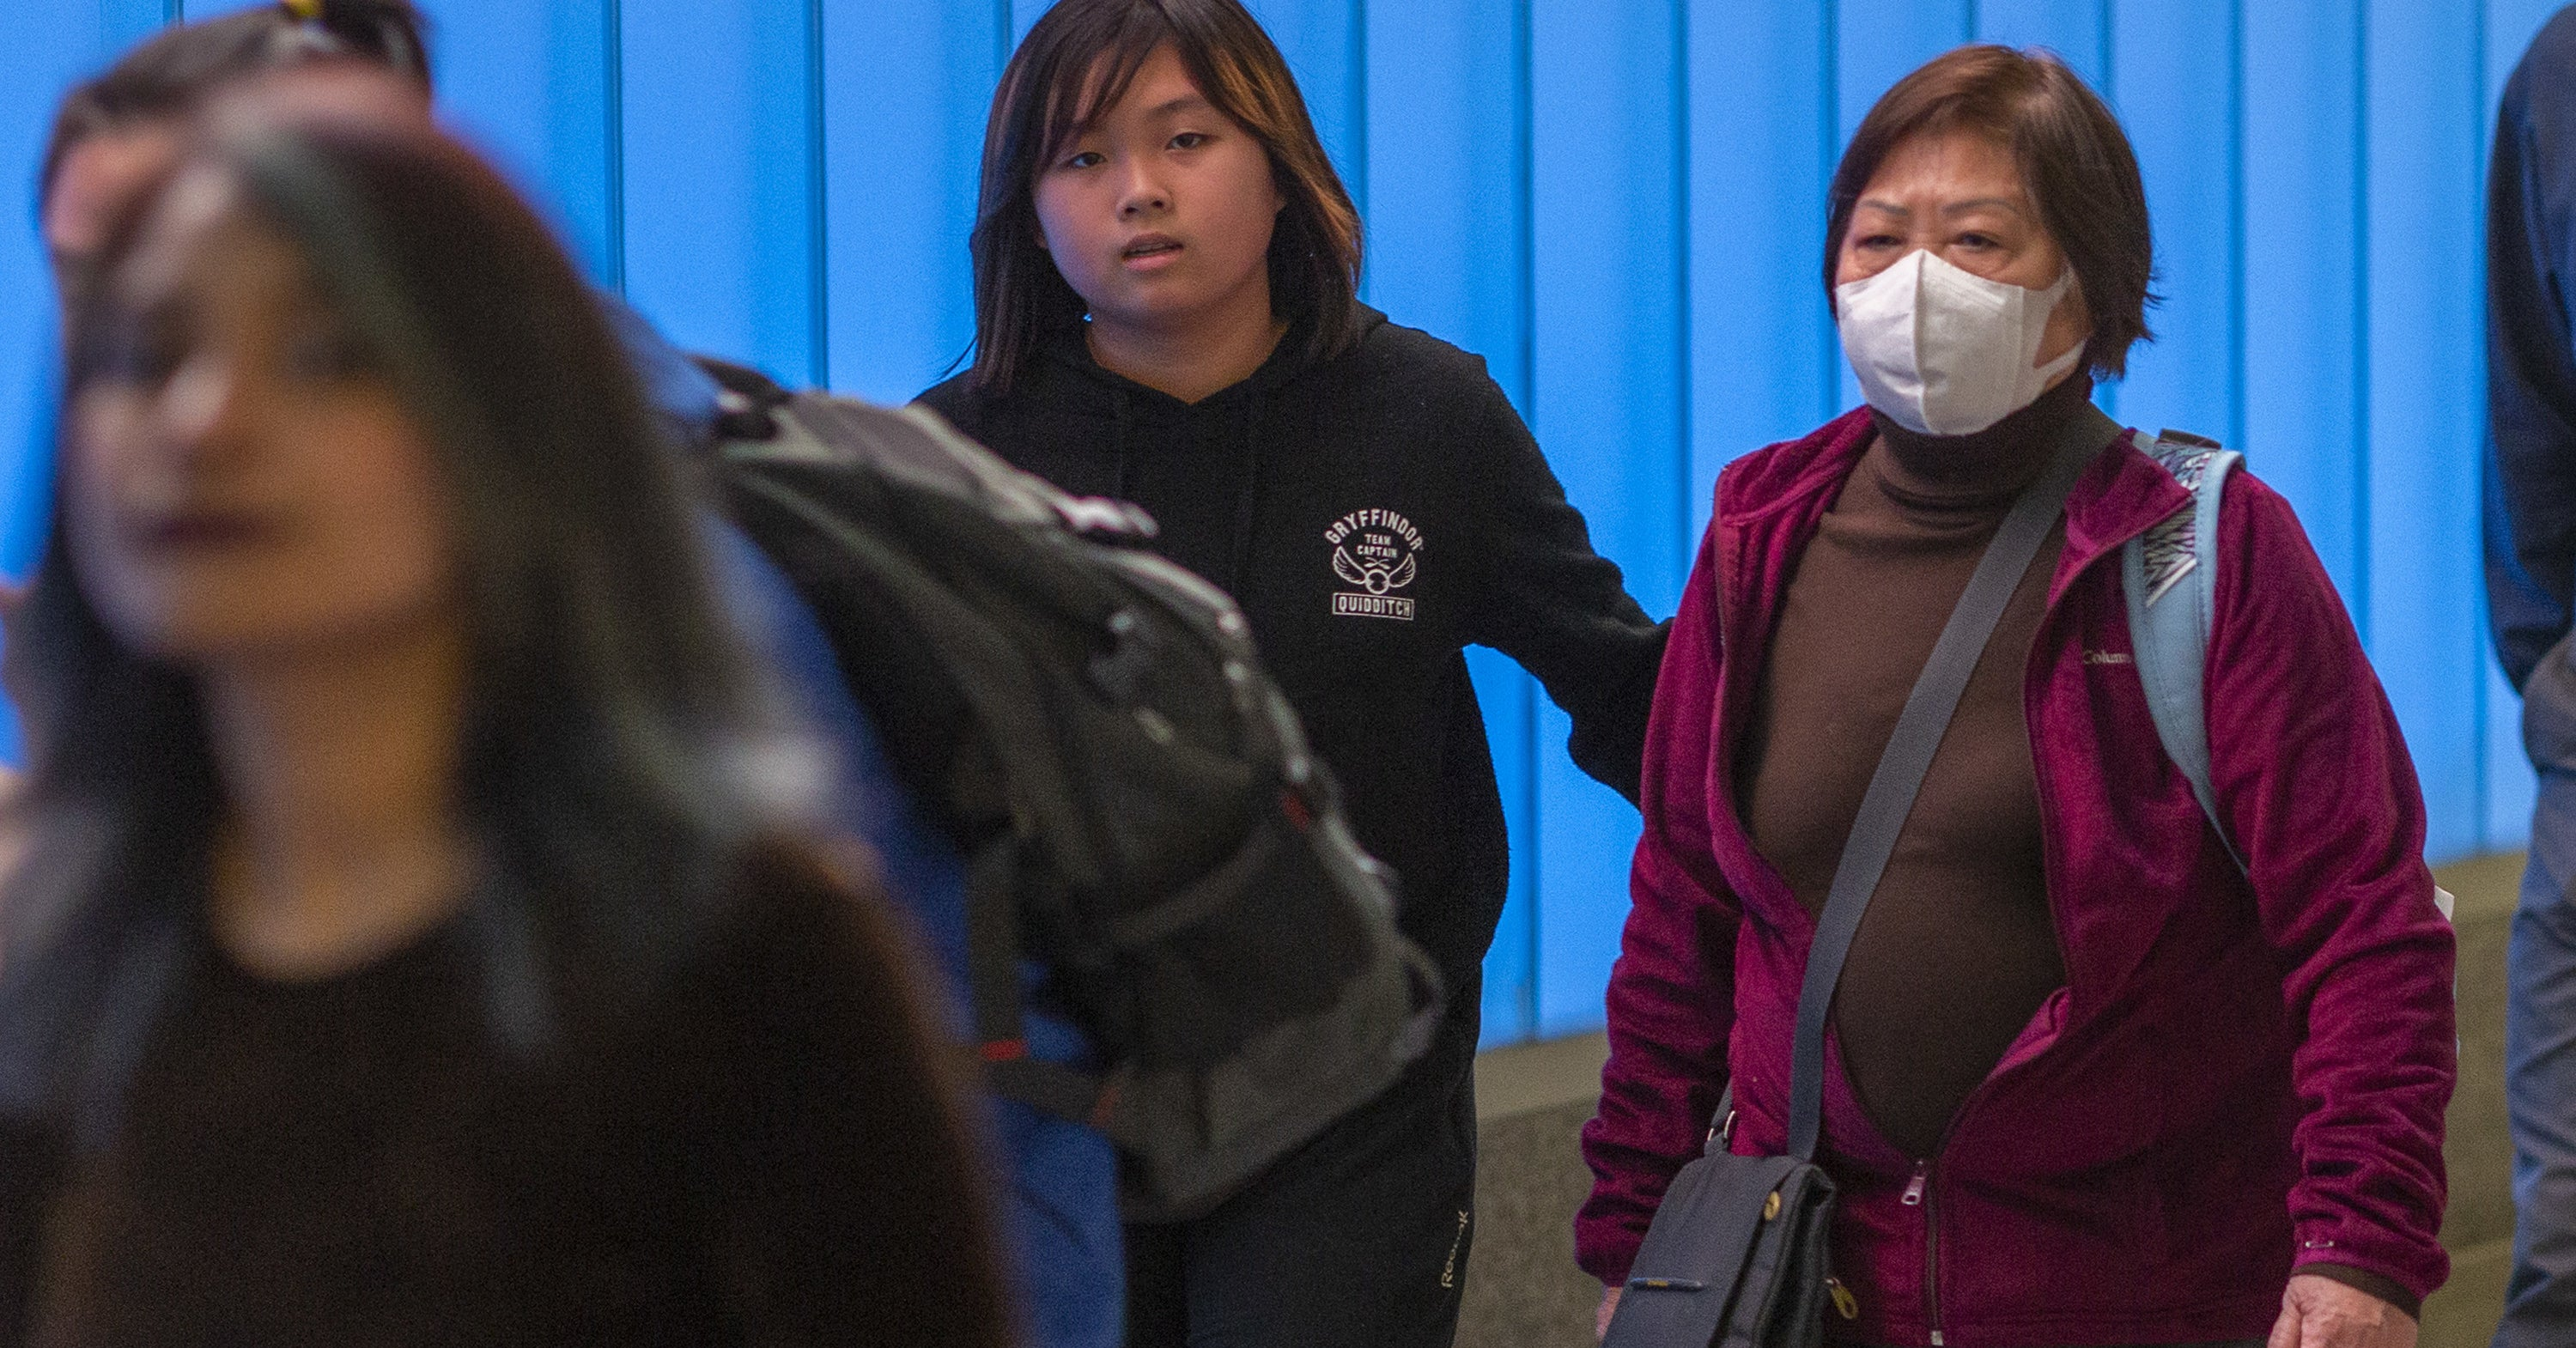 The First Case Of The Chinese Coronavirus Has Hit The US, CDC Reports